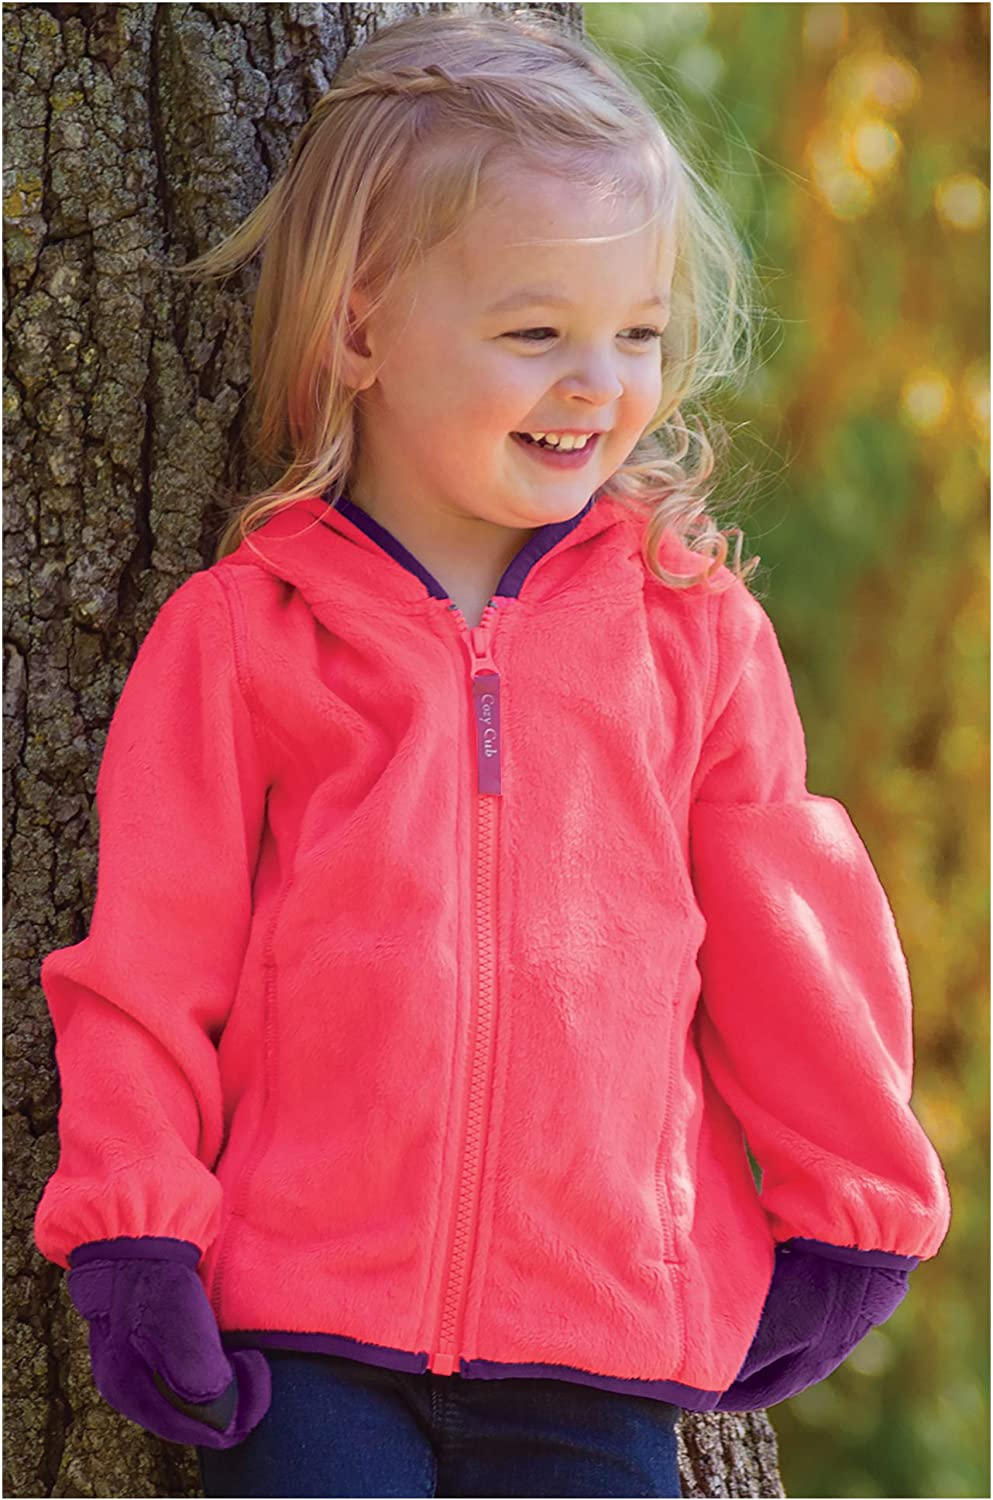 Ages 1-6 One Step Ahead Cozy Cub Waterproof Grow-with-Me Winter Parka with Fleece Insert